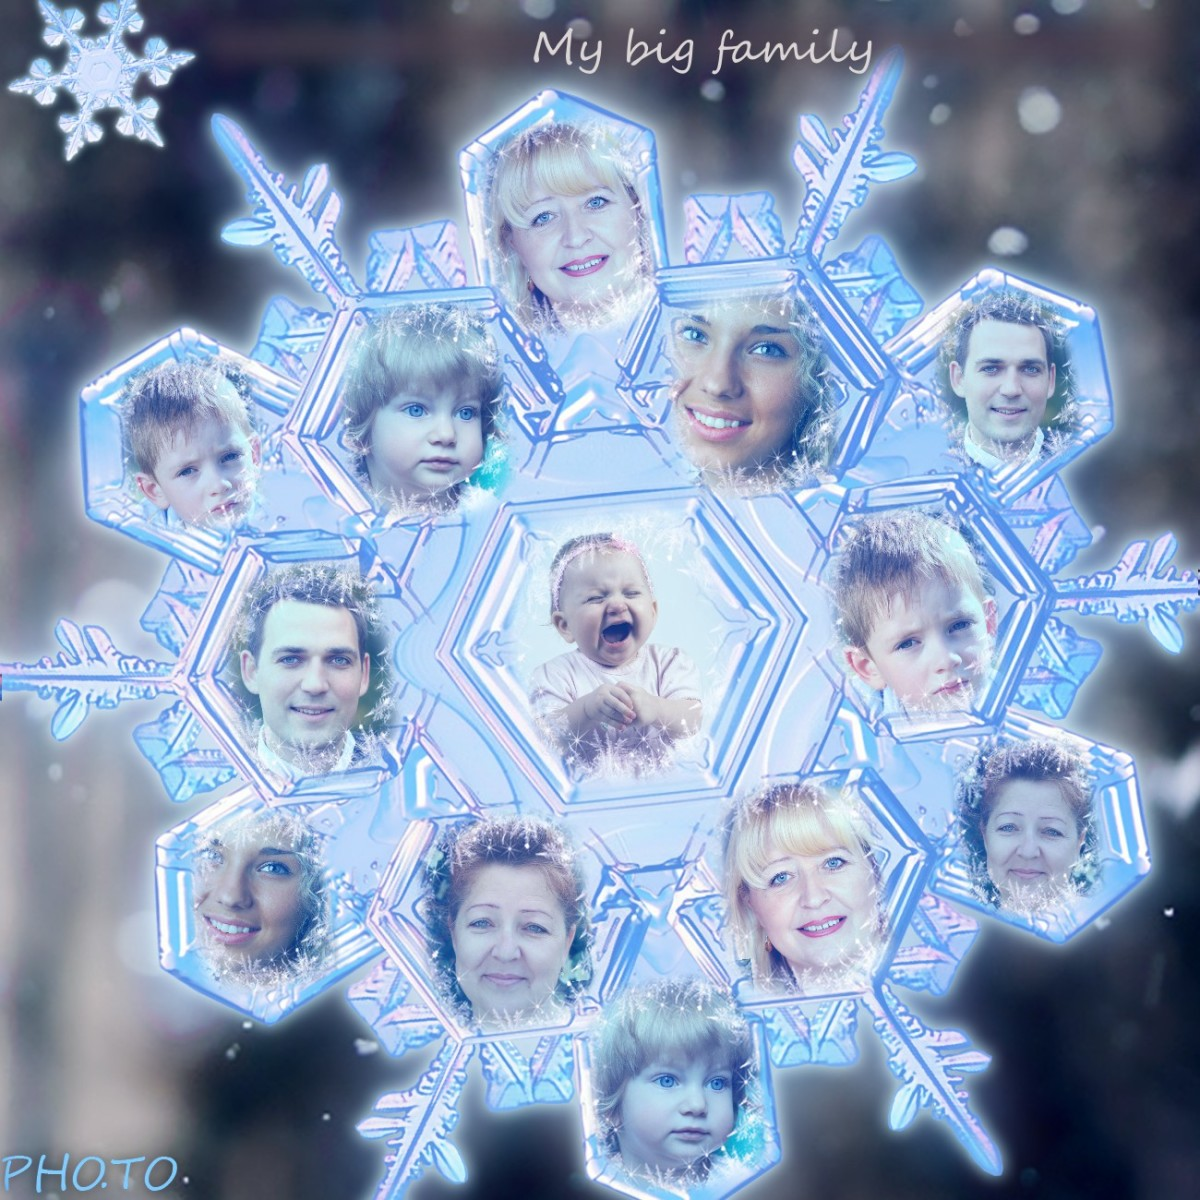 Family members' photos in a snowflake mosaic photo collage.